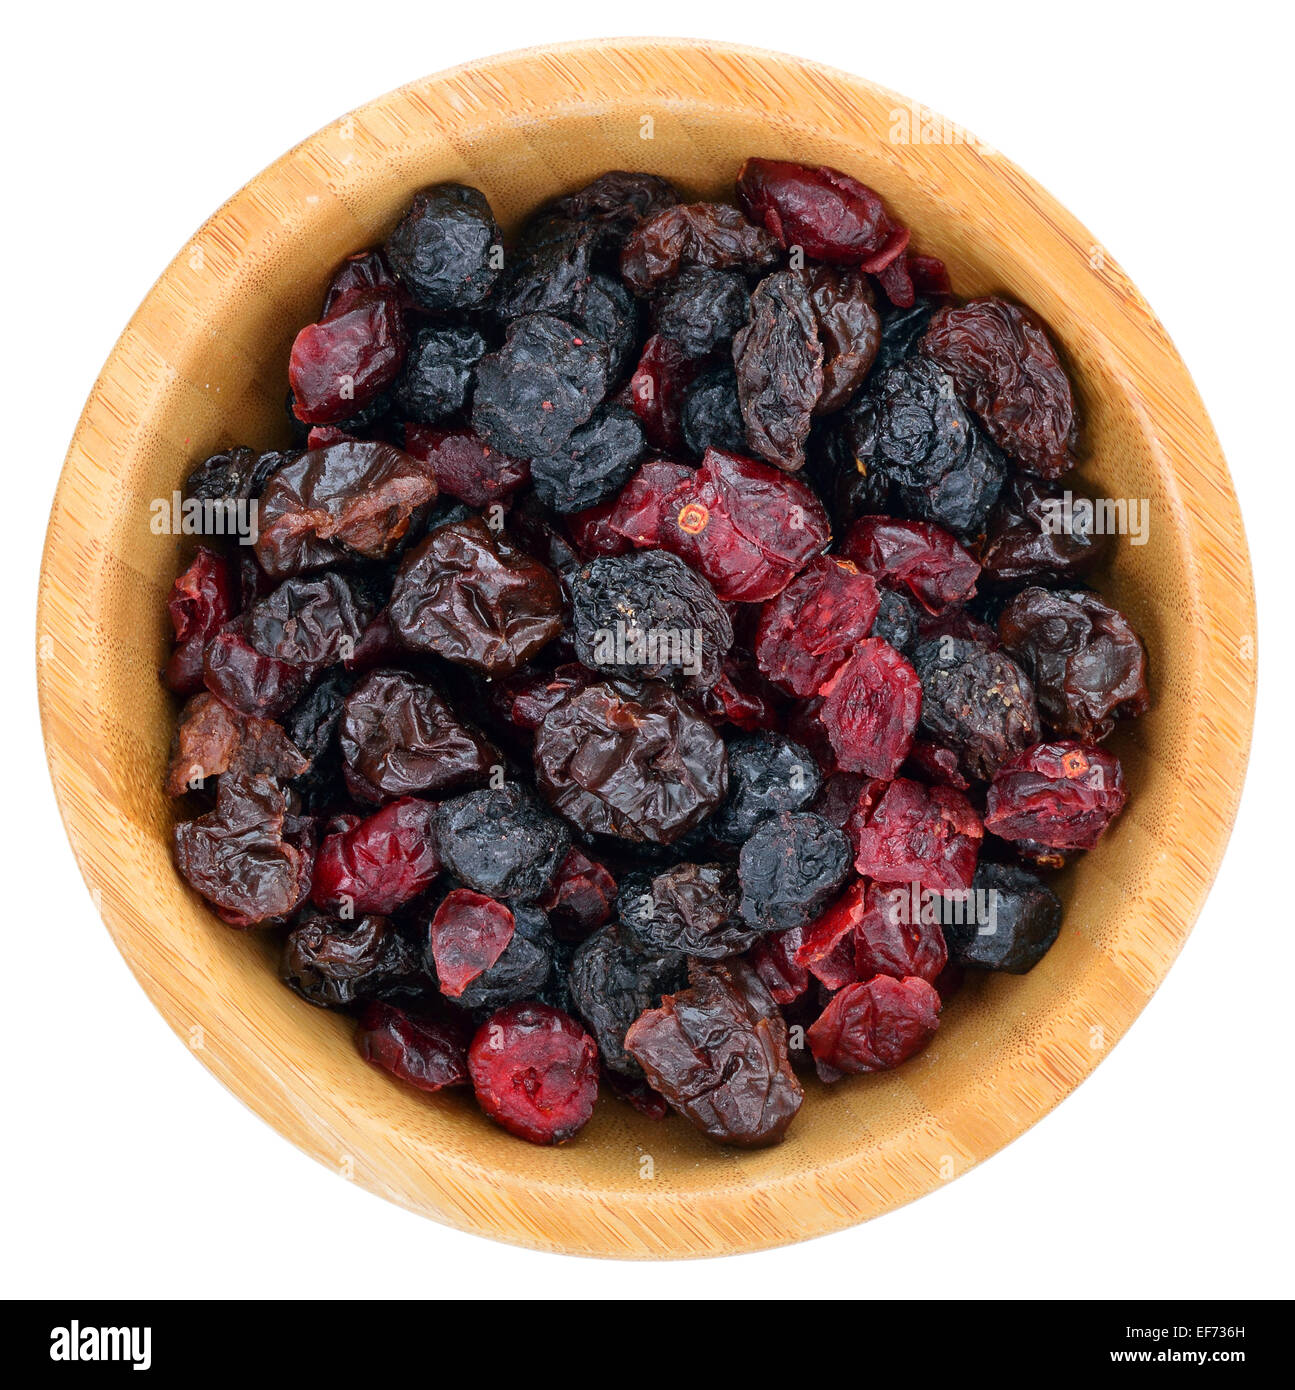 are berries fruit dried fruits healthy